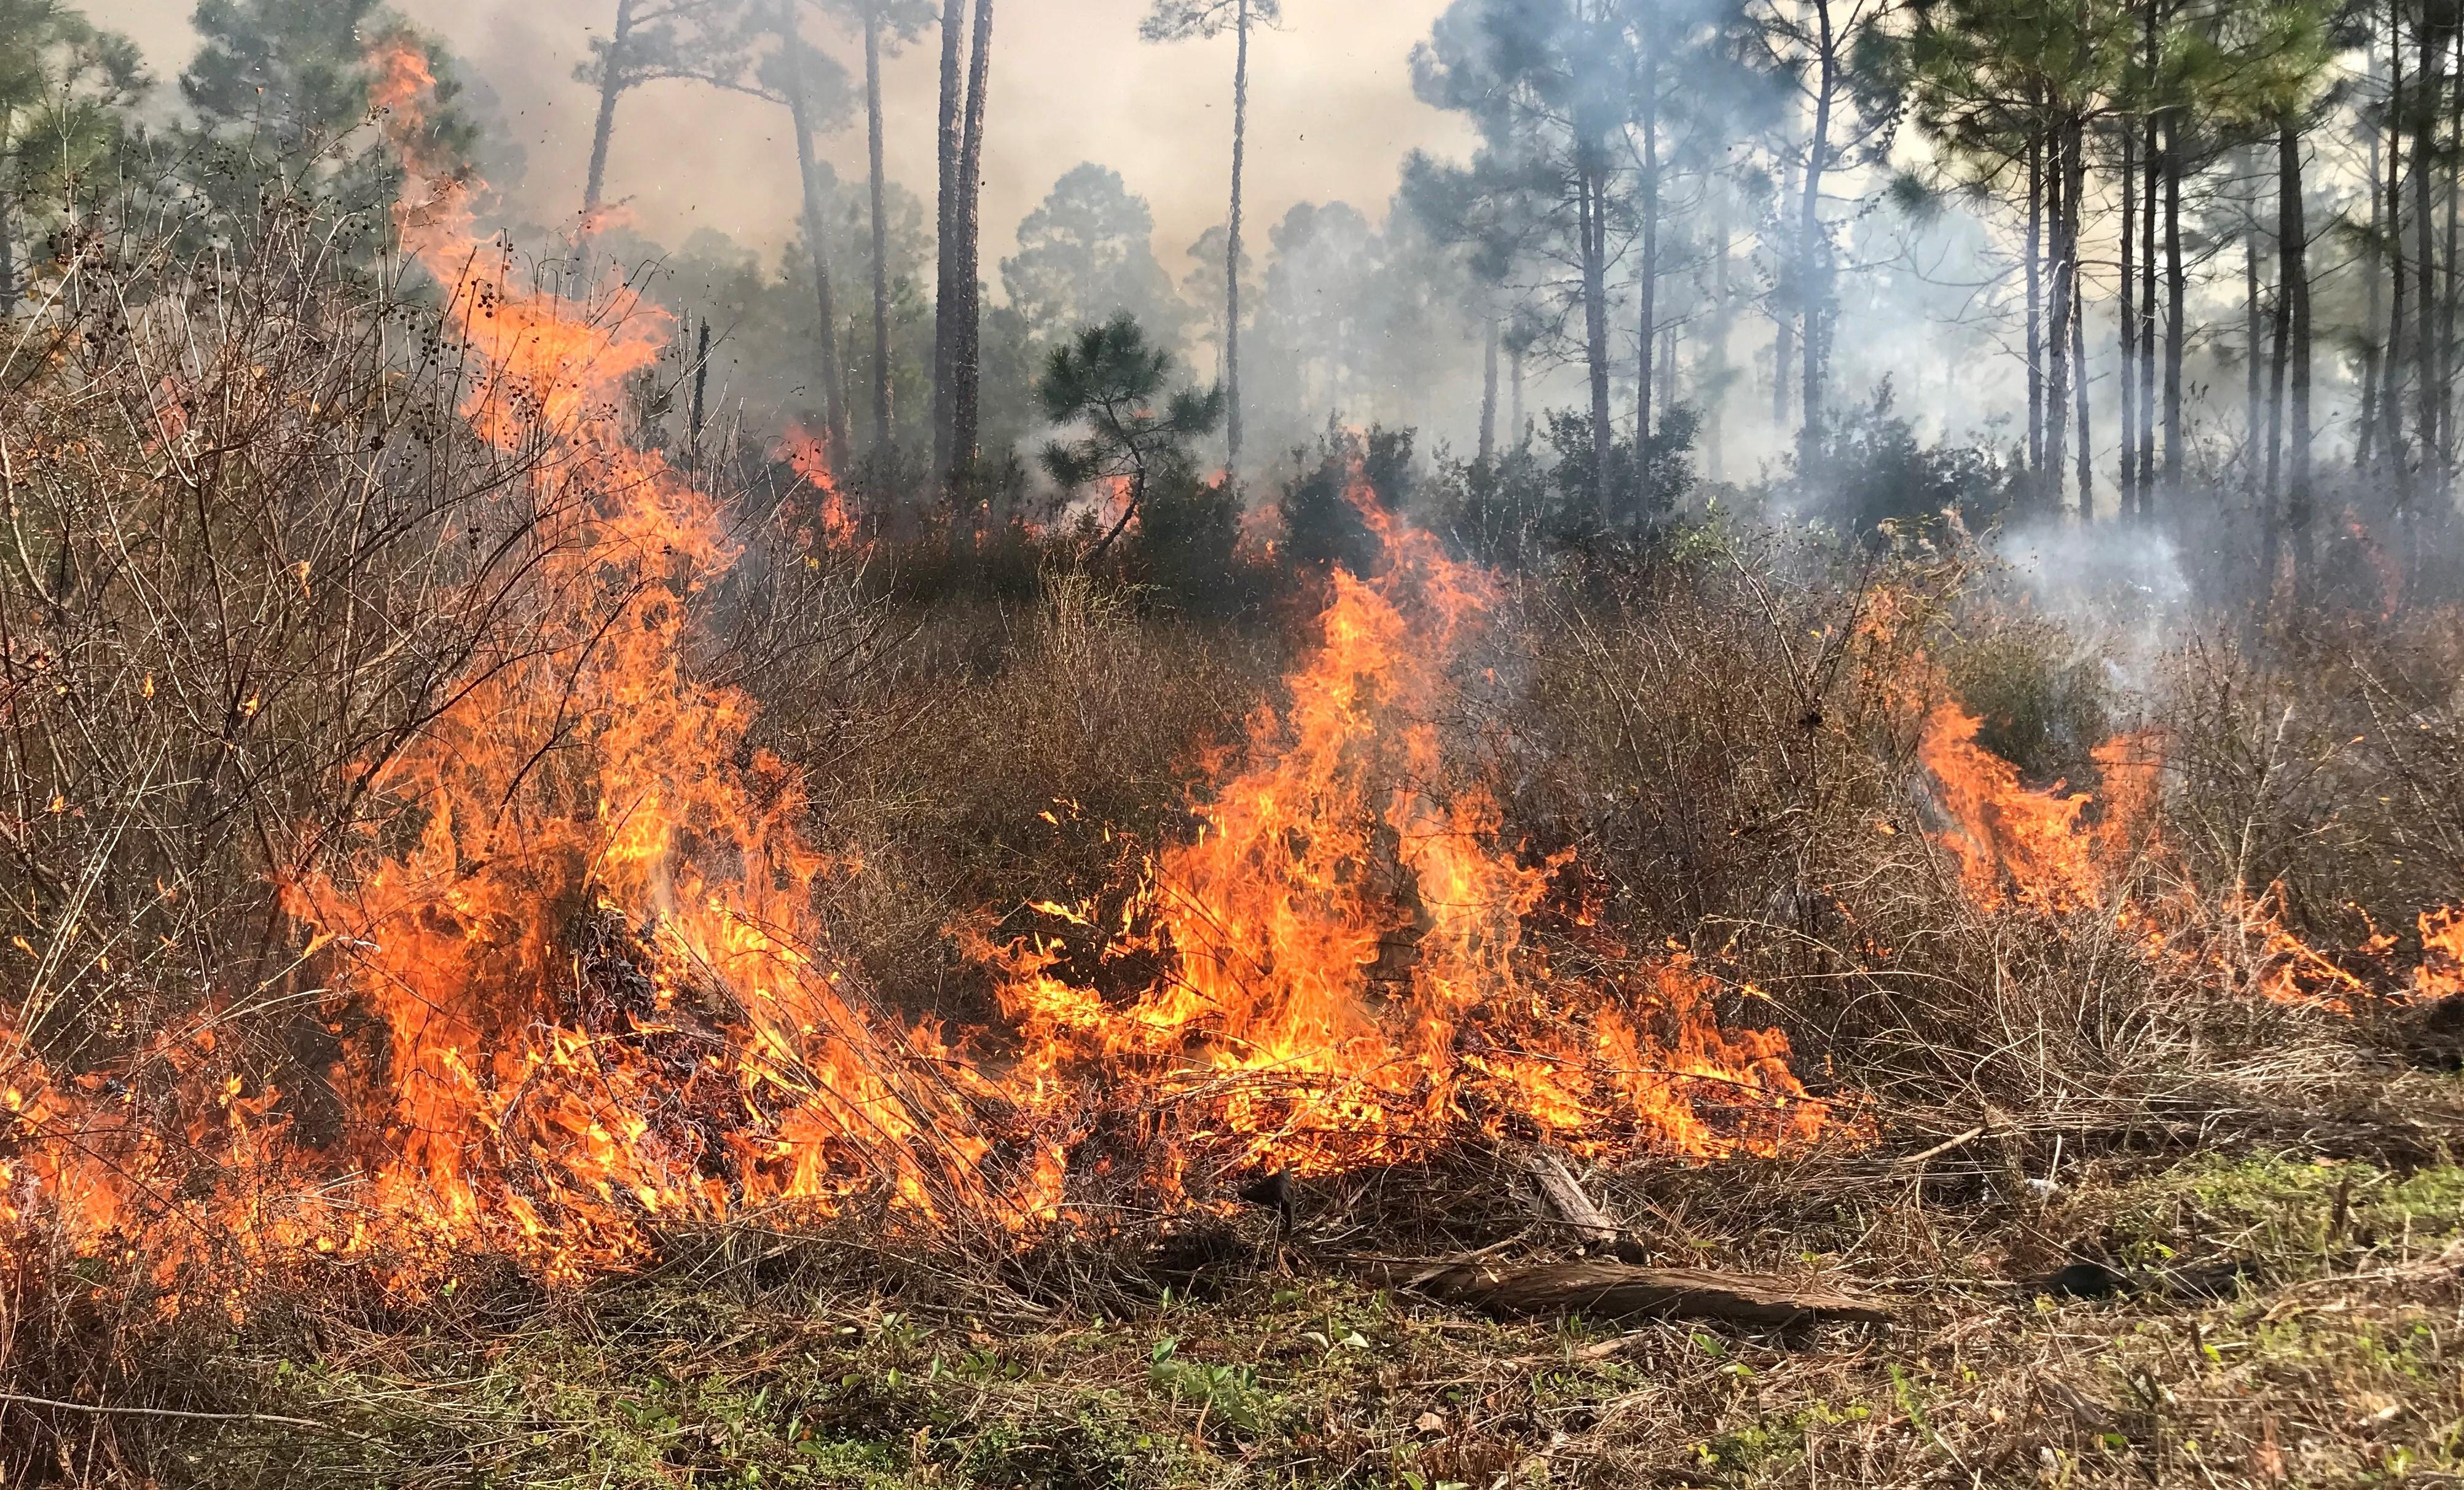 Prescribed Burning in Gulf State Park. Photo by Farren Dell